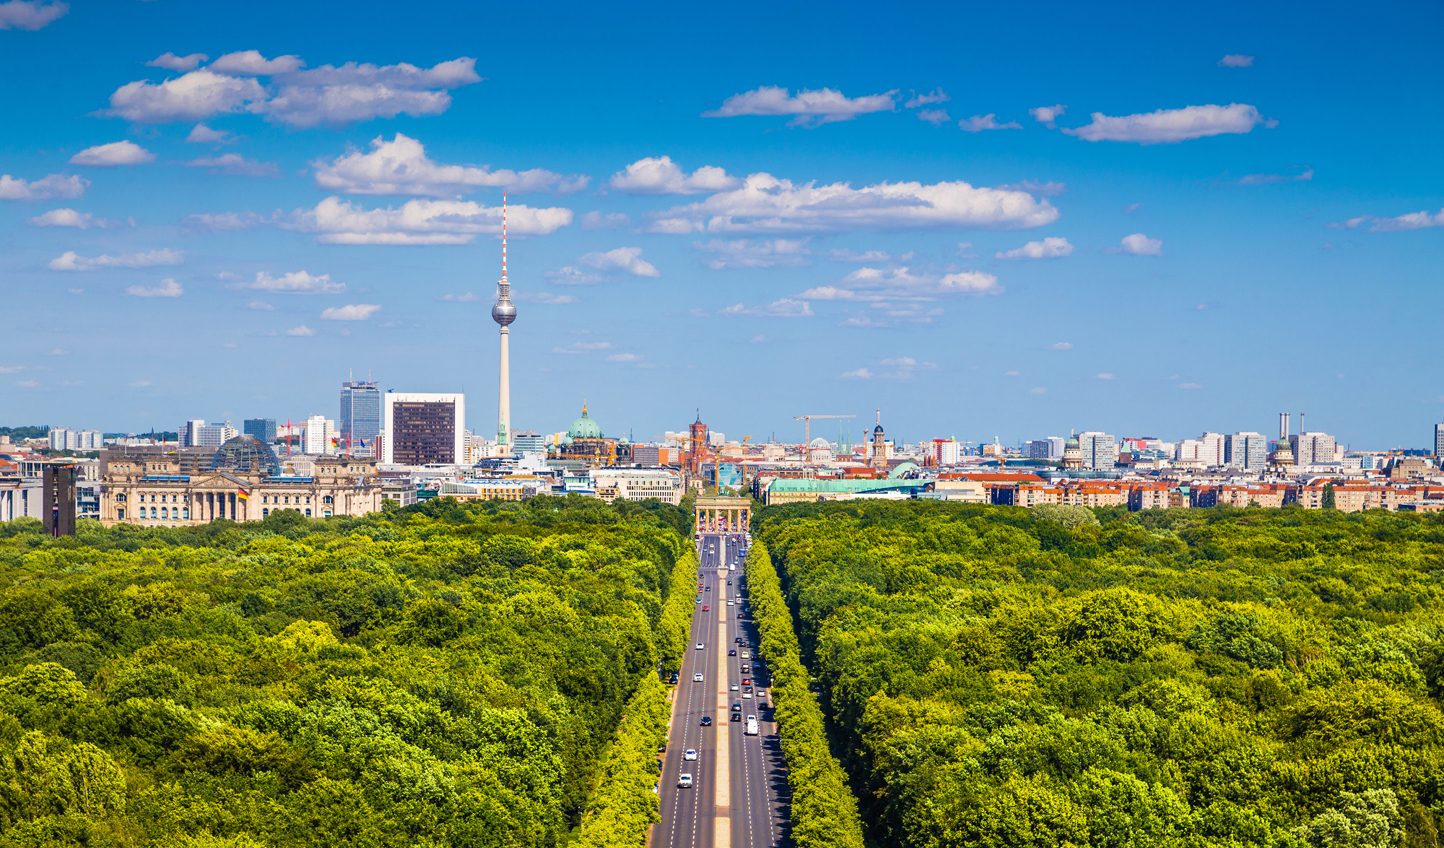 Enjoy incredible views of the Berlin skyline from the leafy surrounds of the Tiergarten